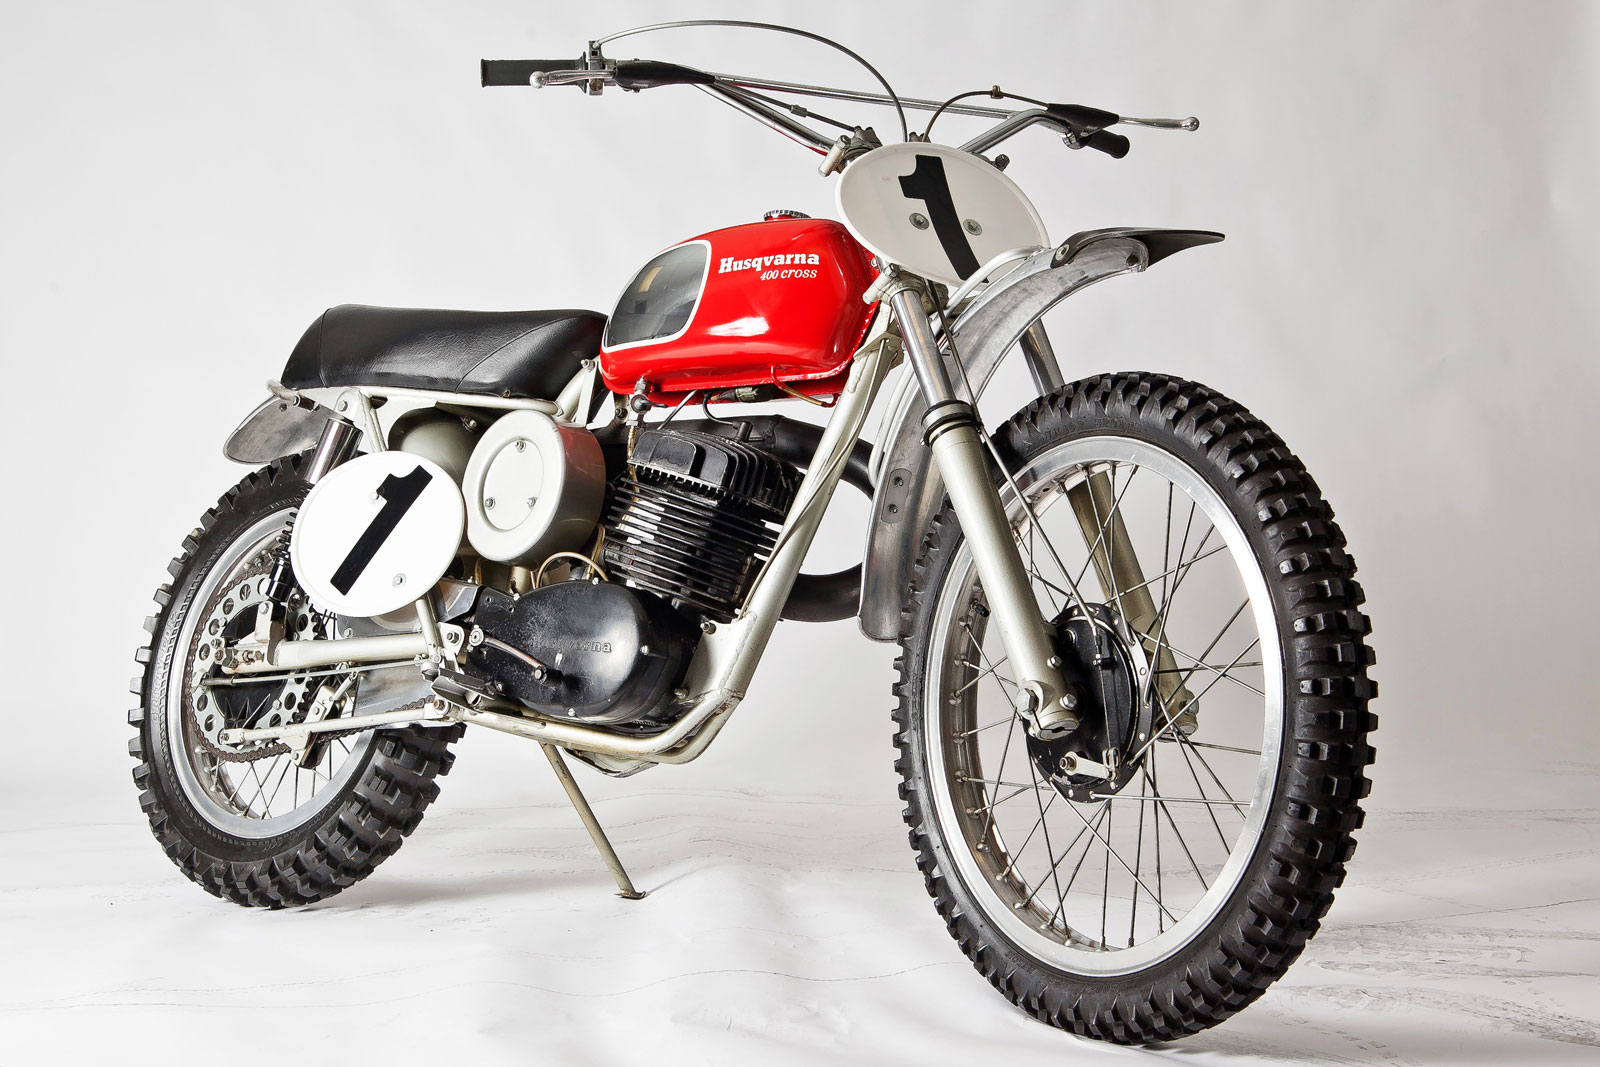 AMA Motorcycle Hall of Fame inducts Malcolm Smith's Husqvarna